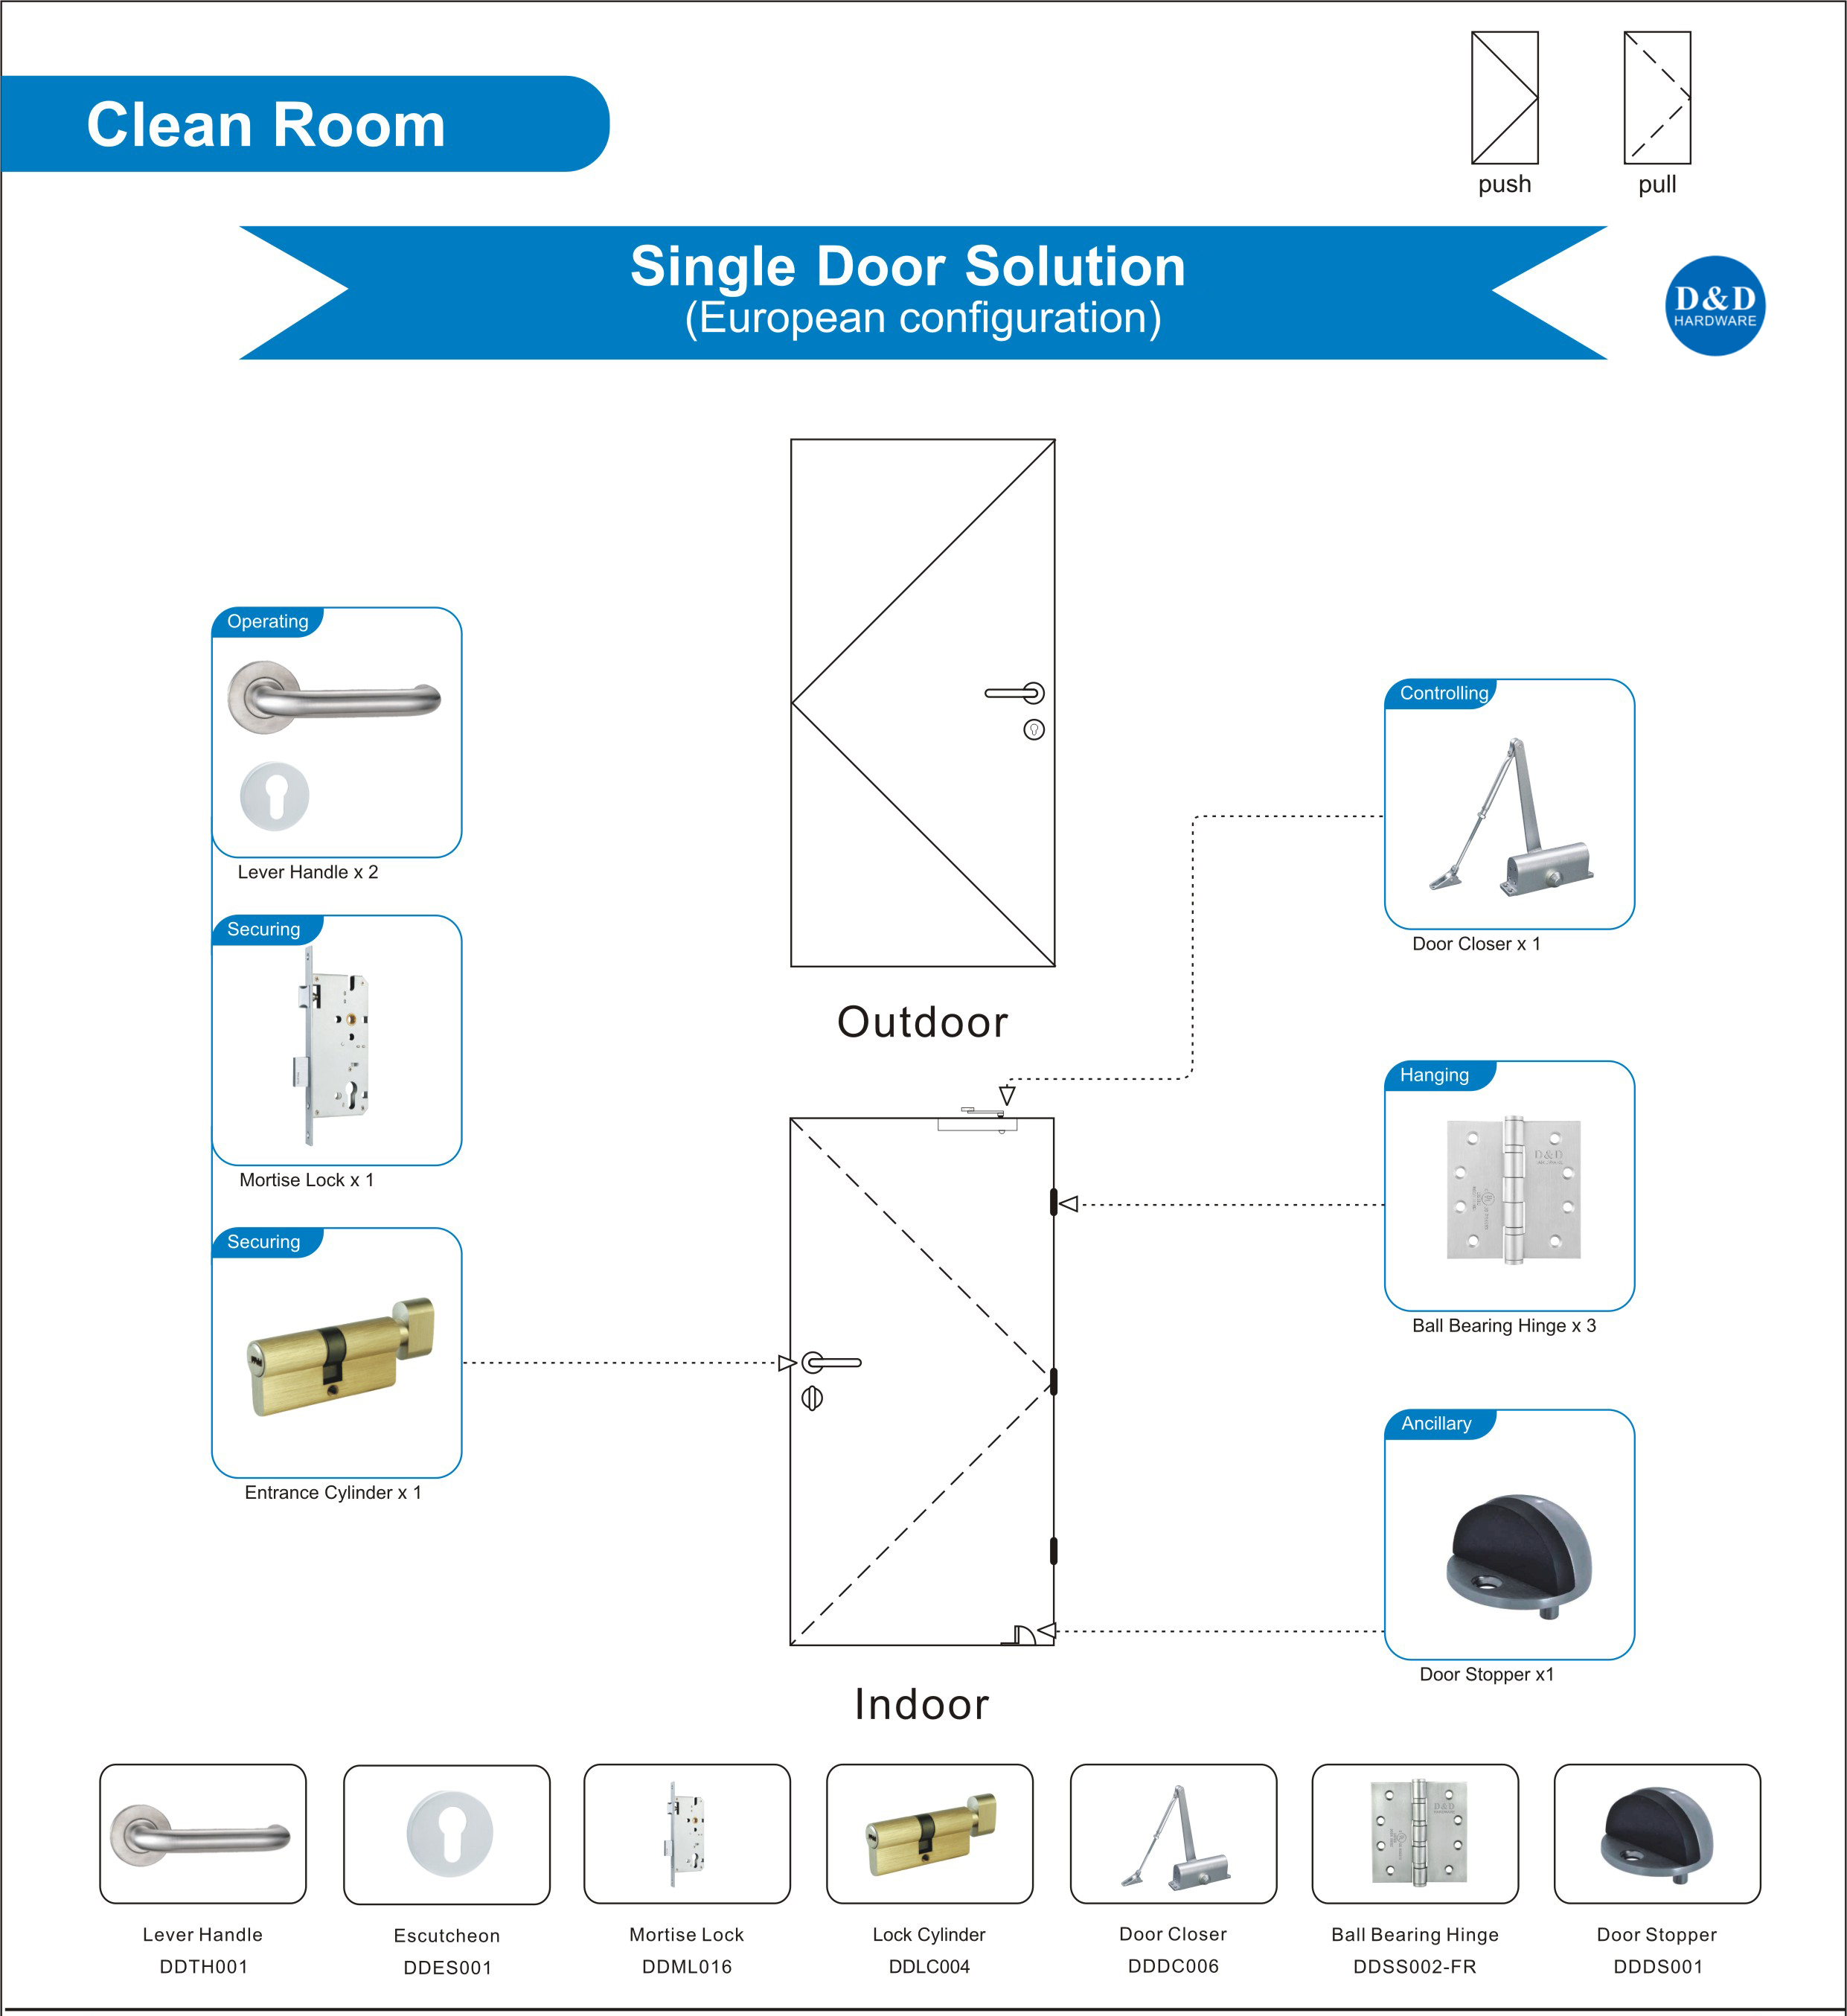 Architecture Door Hardware Solution for Clean Room Door